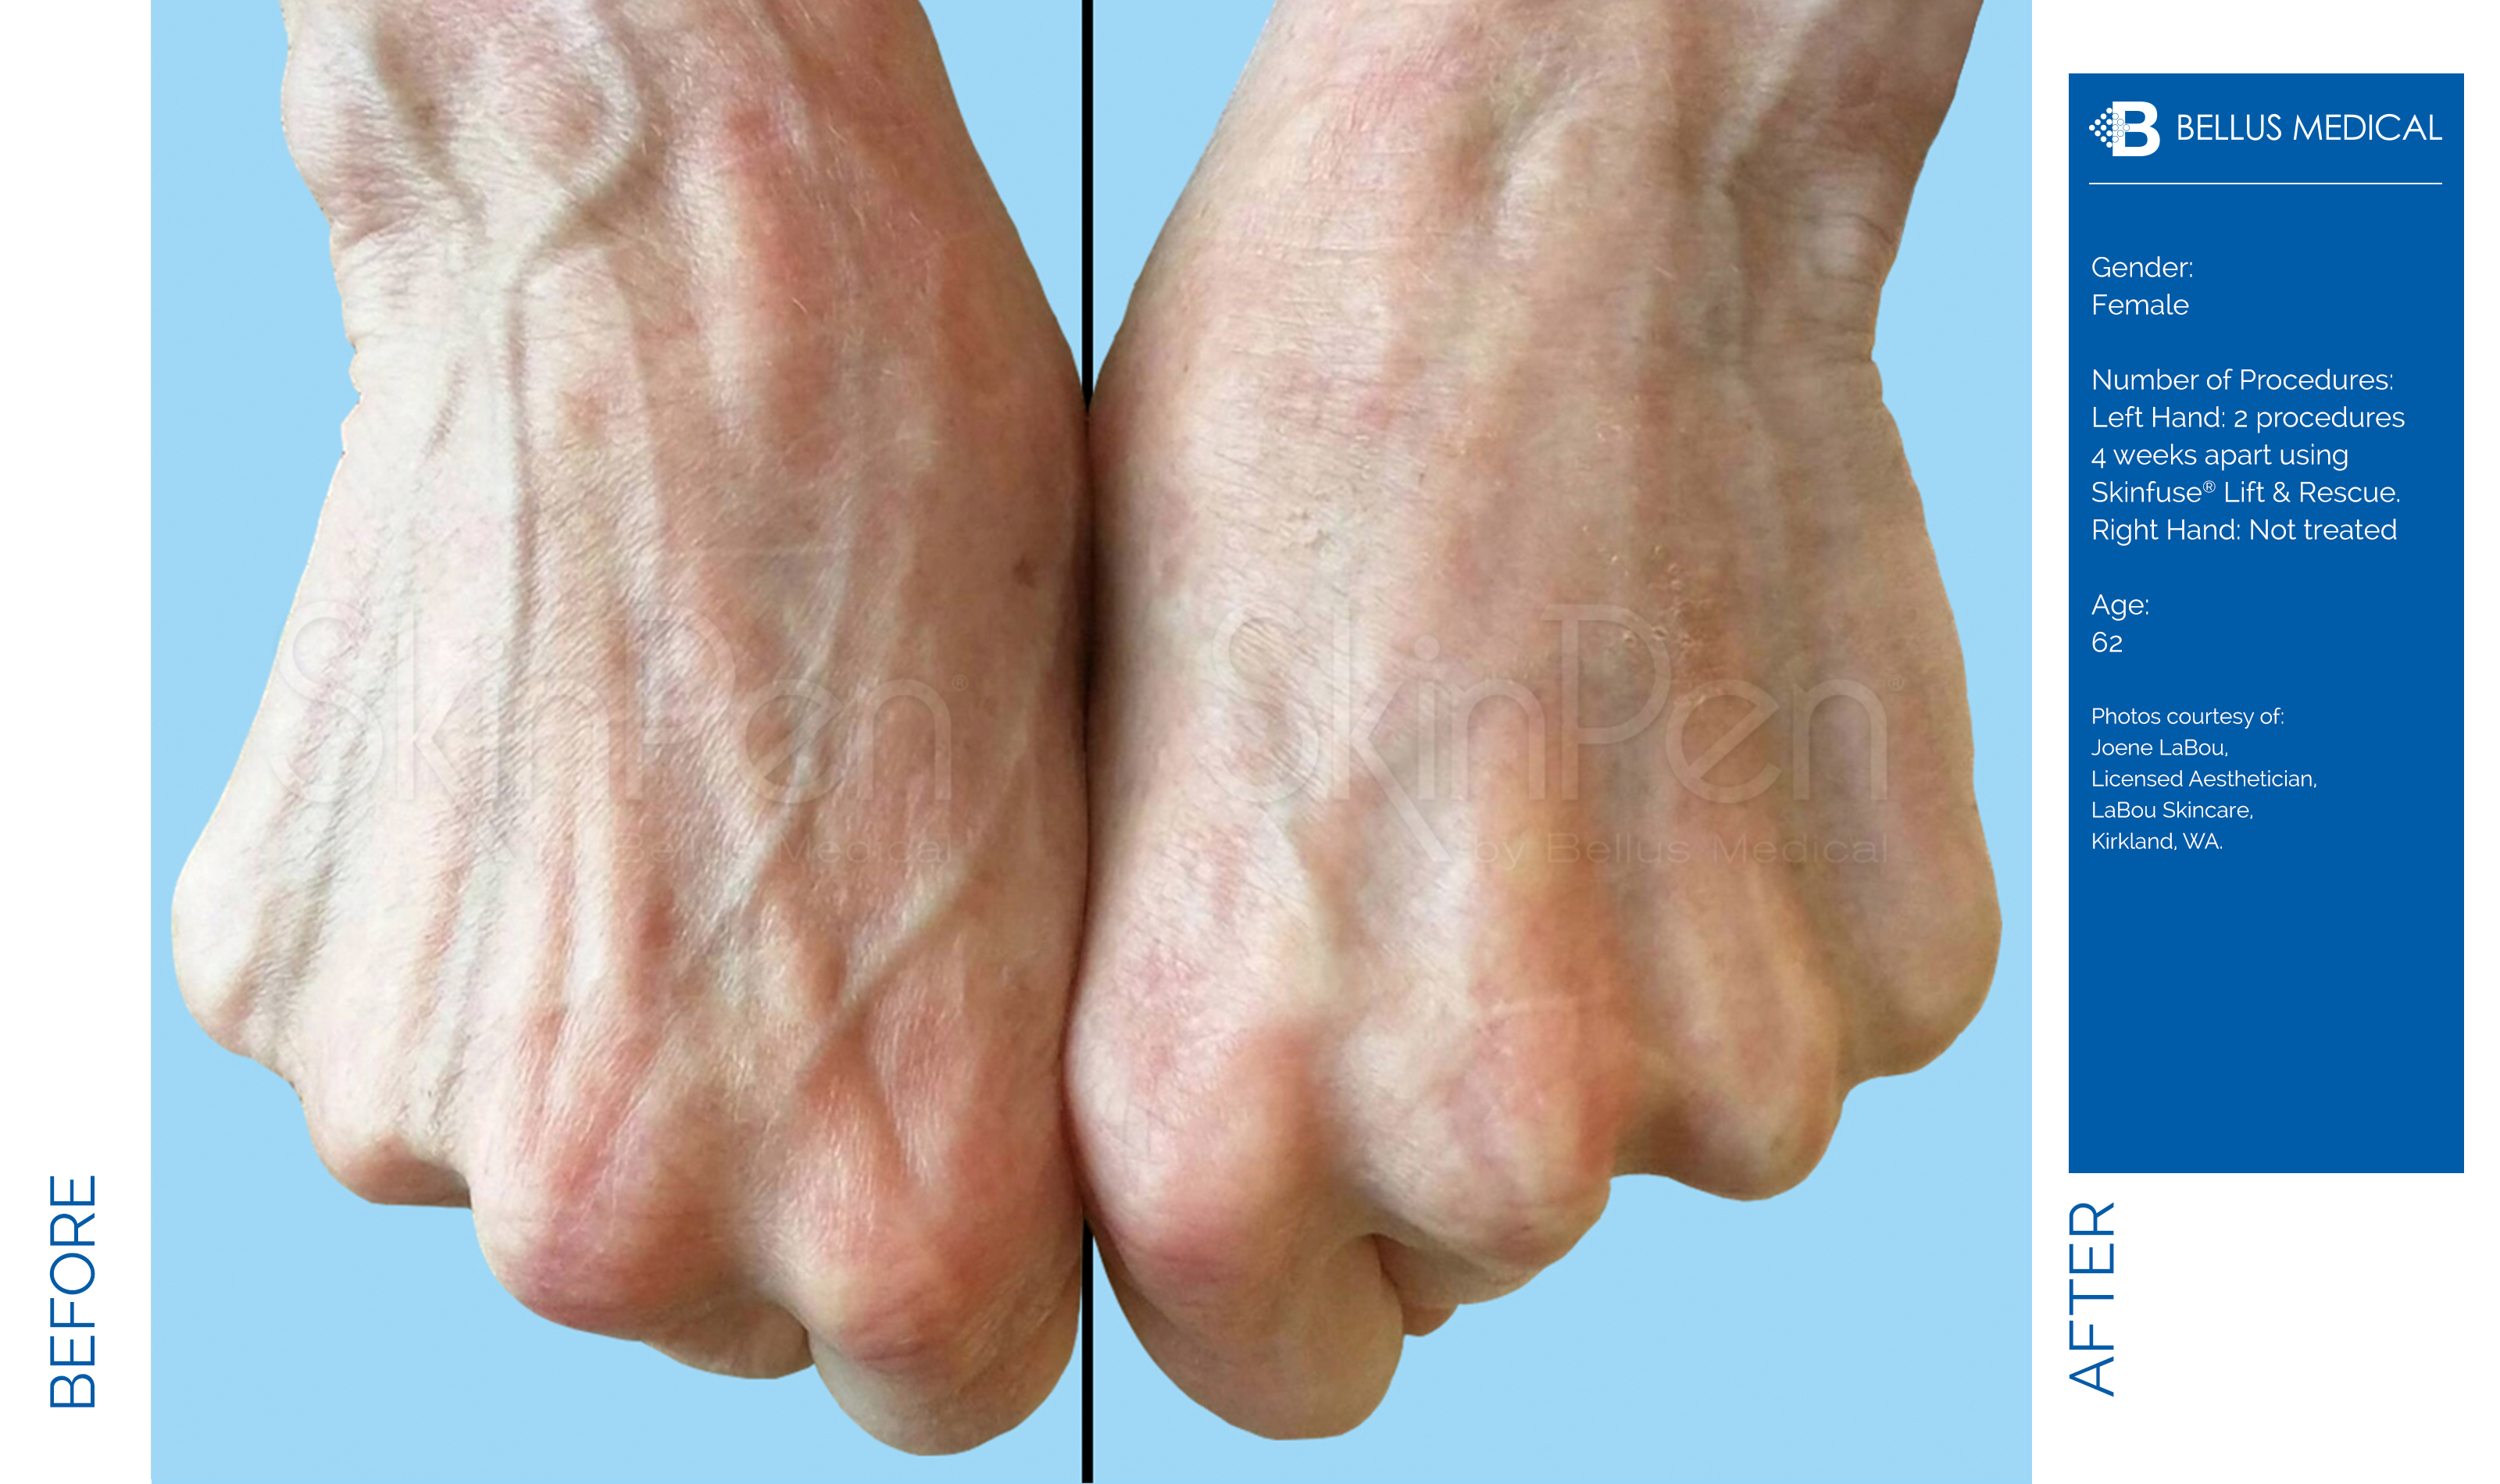 hands x2 treatments age 62